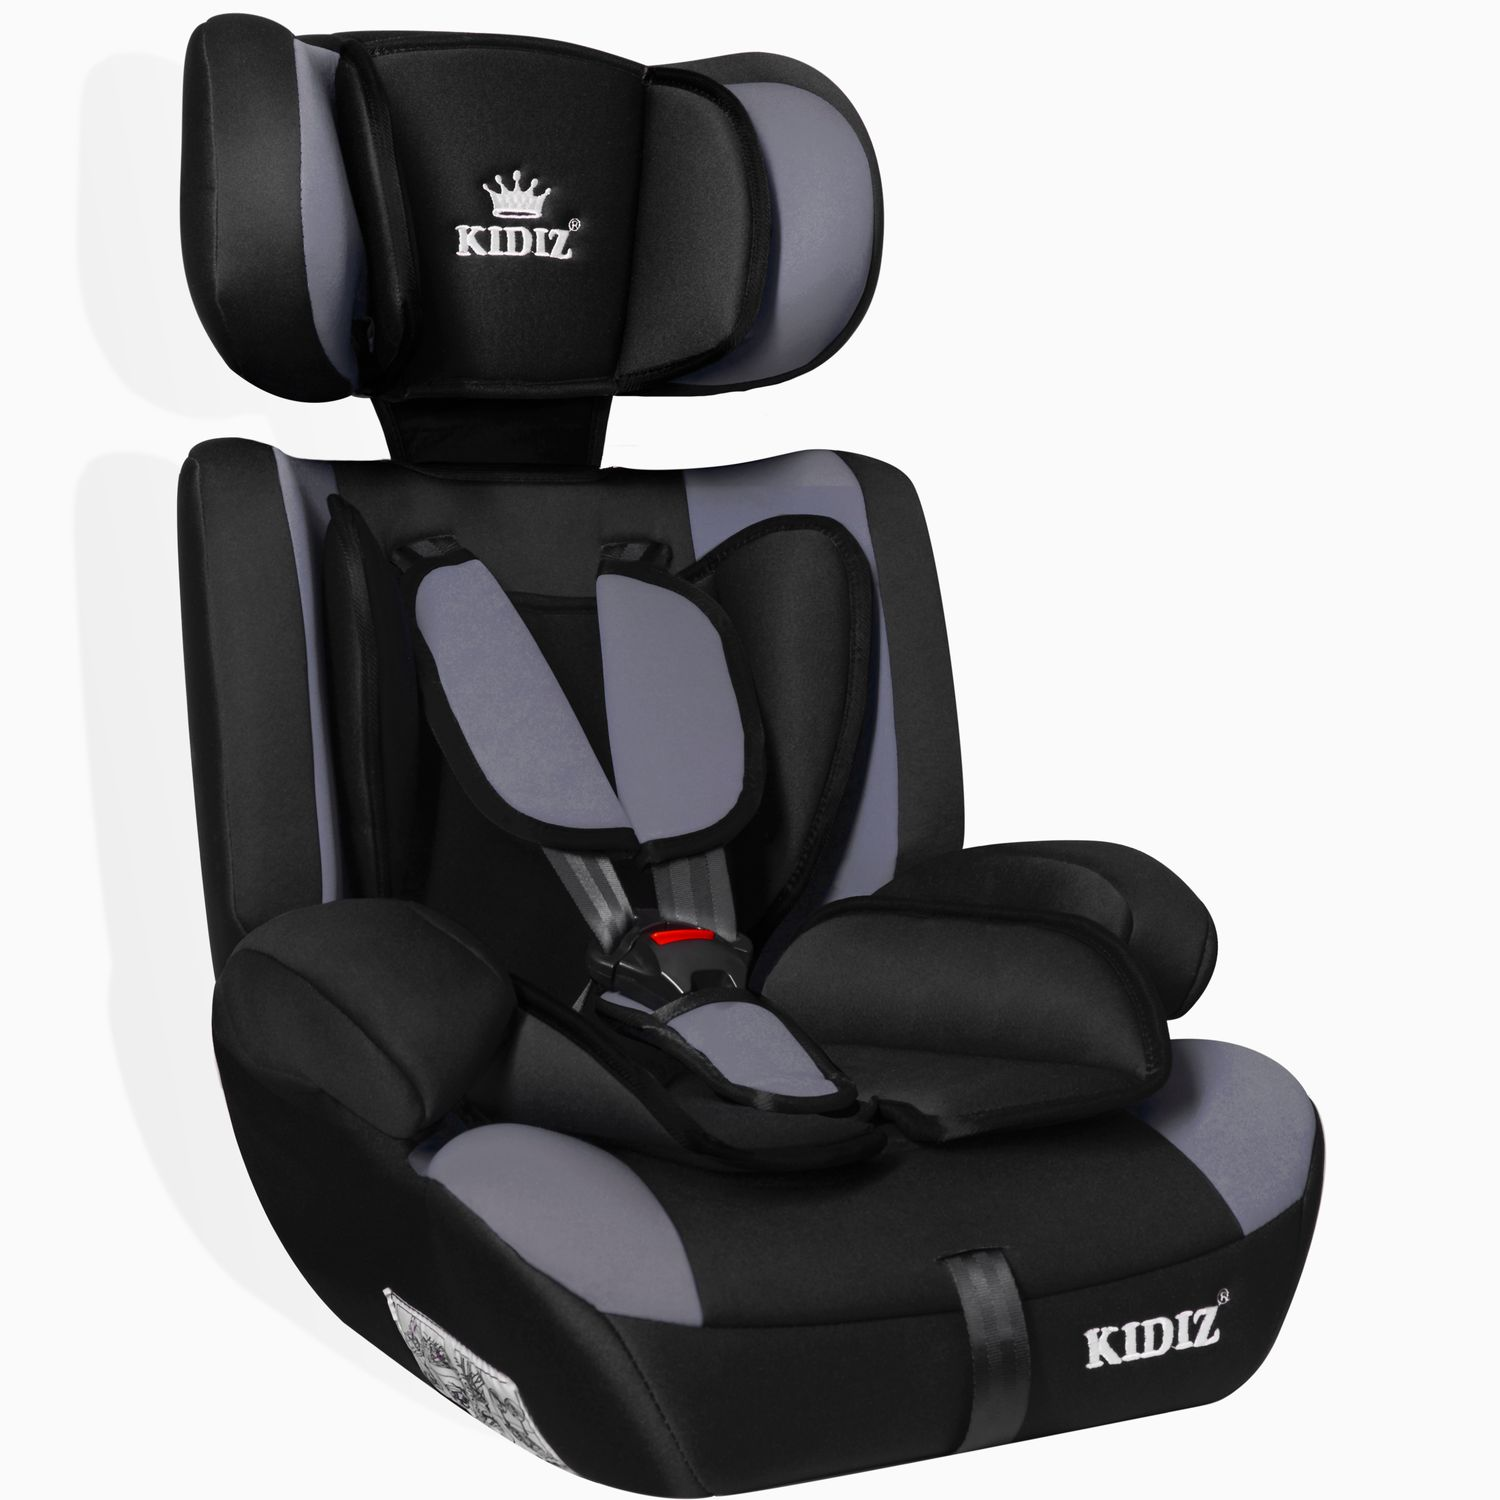 kidiz autokindersitz autositz kinderautositz 9 36 kg gruppe 1 2 3 sitz grau ebay. Black Bedroom Furniture Sets. Home Design Ideas